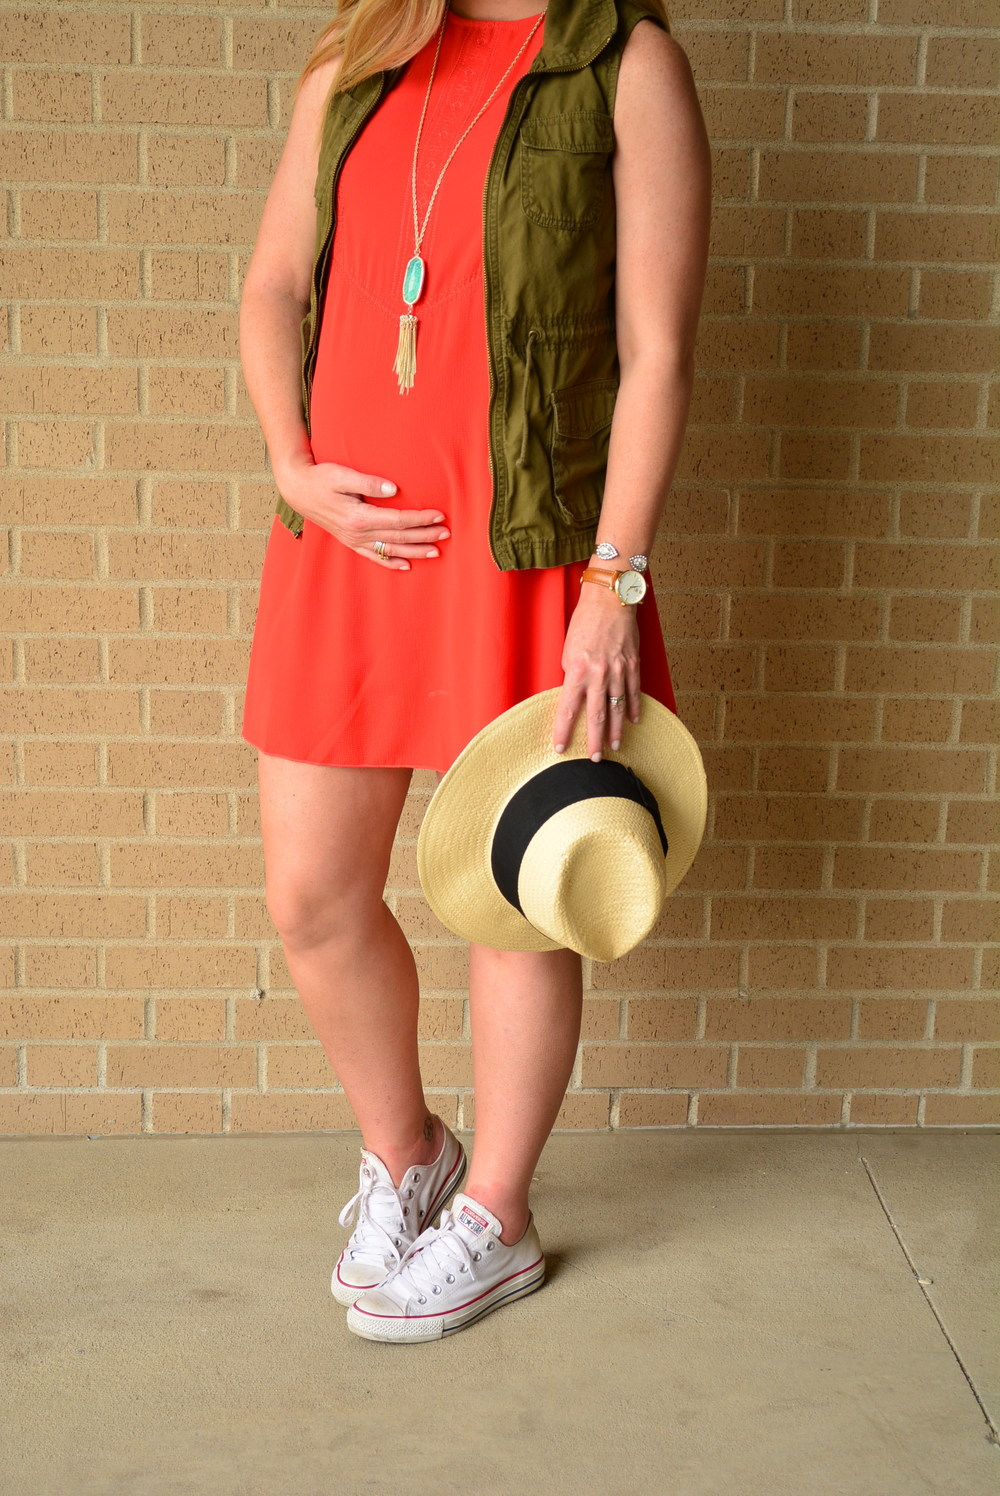 Summer maternity outfit third trimester #maternityoutfit